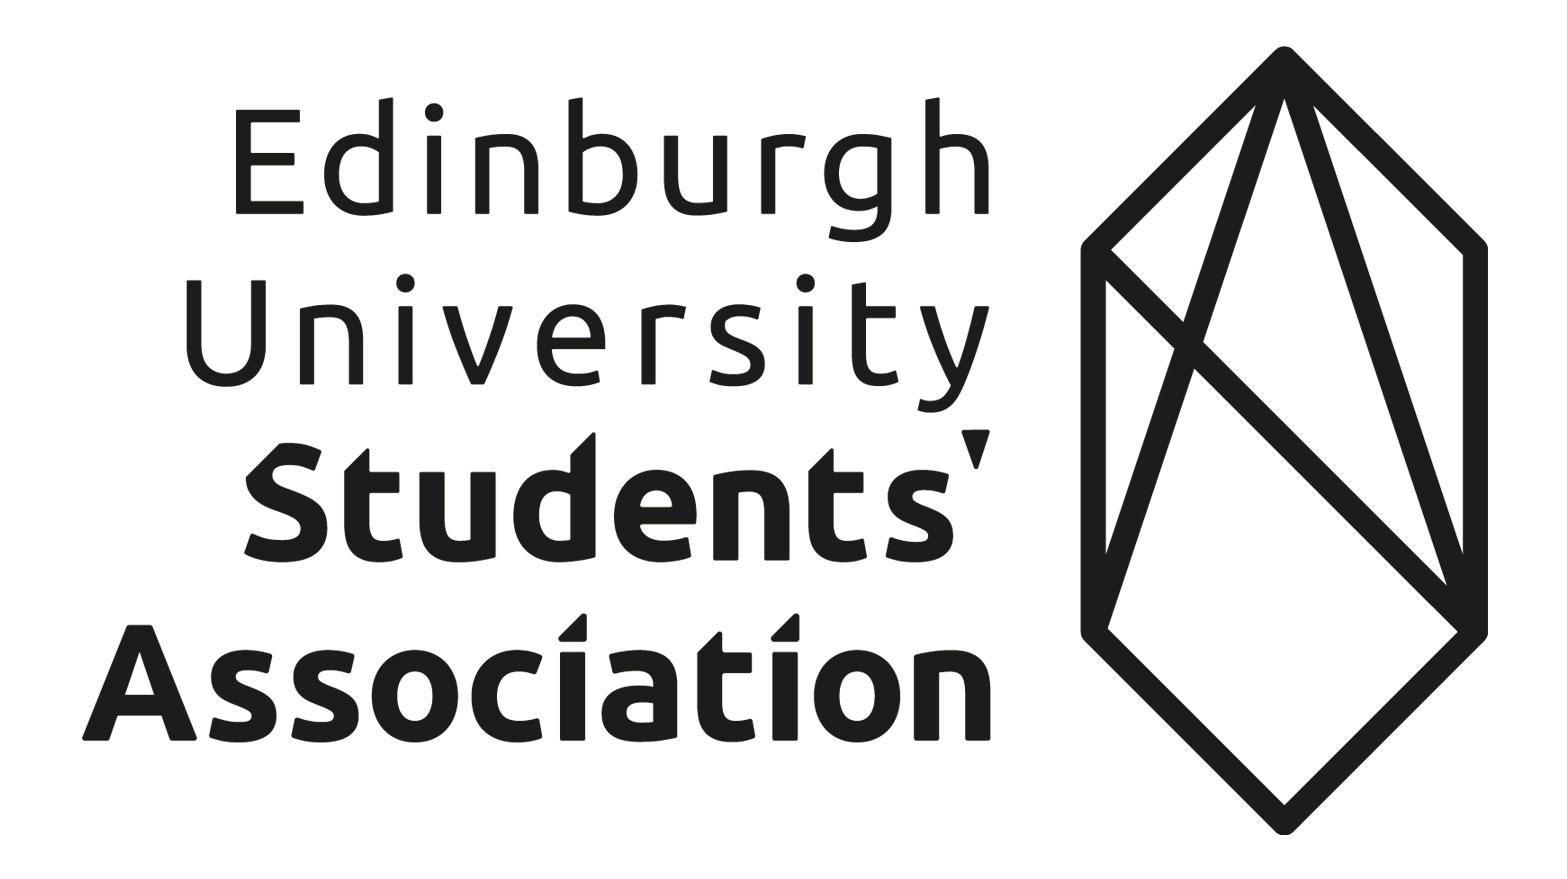 Edinburgh University Students